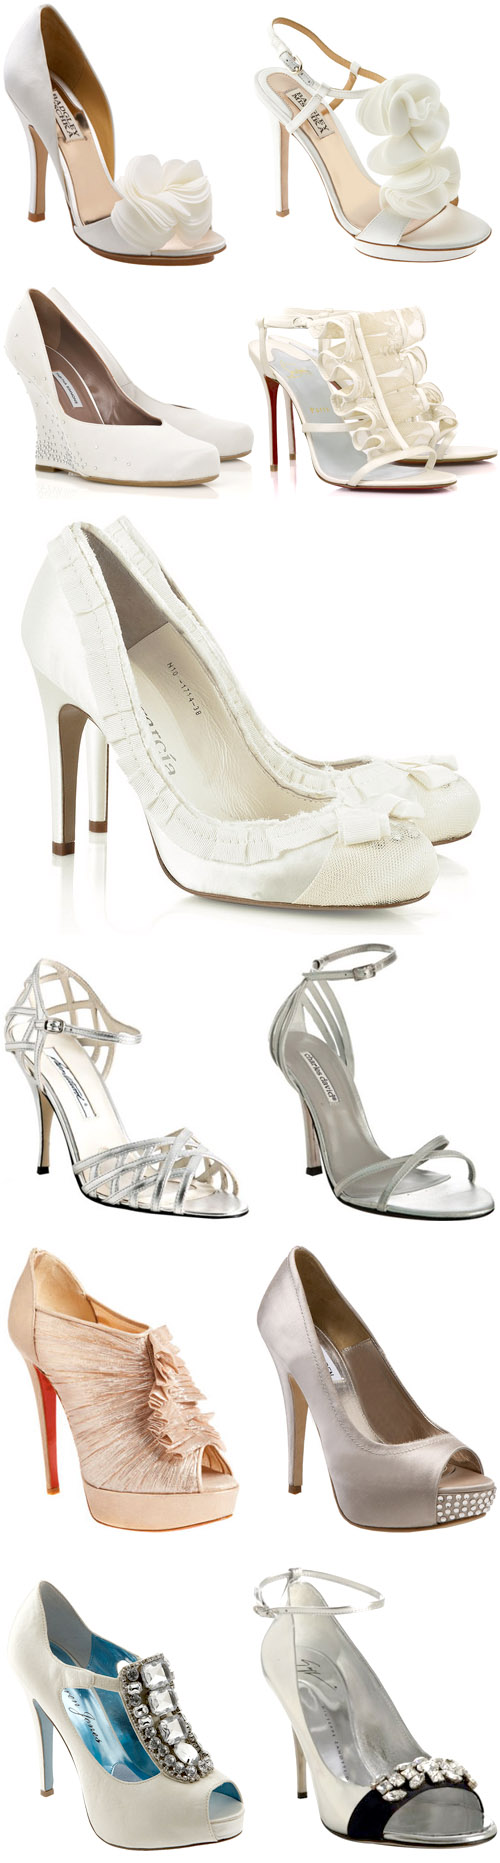 white, silver and metallic wedding shoes